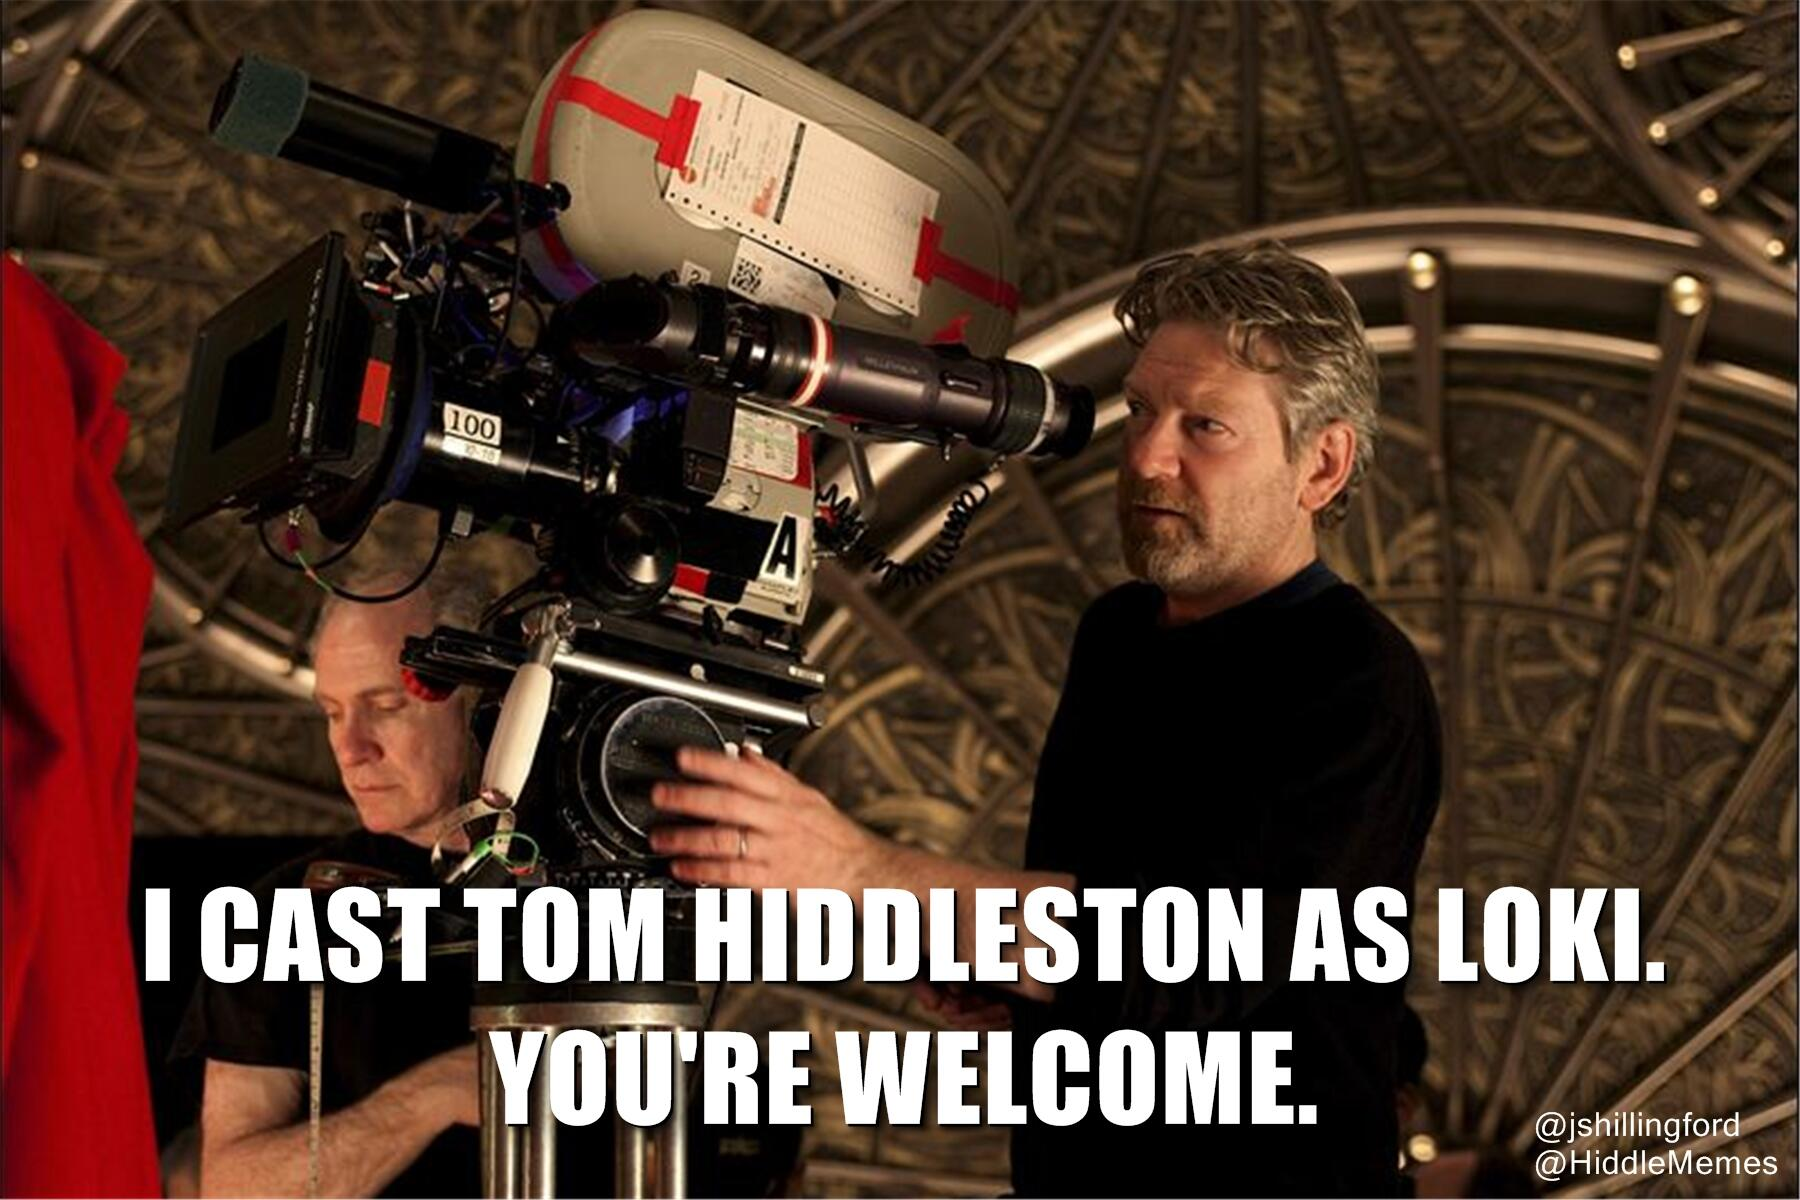 @HiddleMemes: From the meme archives: Thank you, Sir Ken! (Created with @jshillingford) //